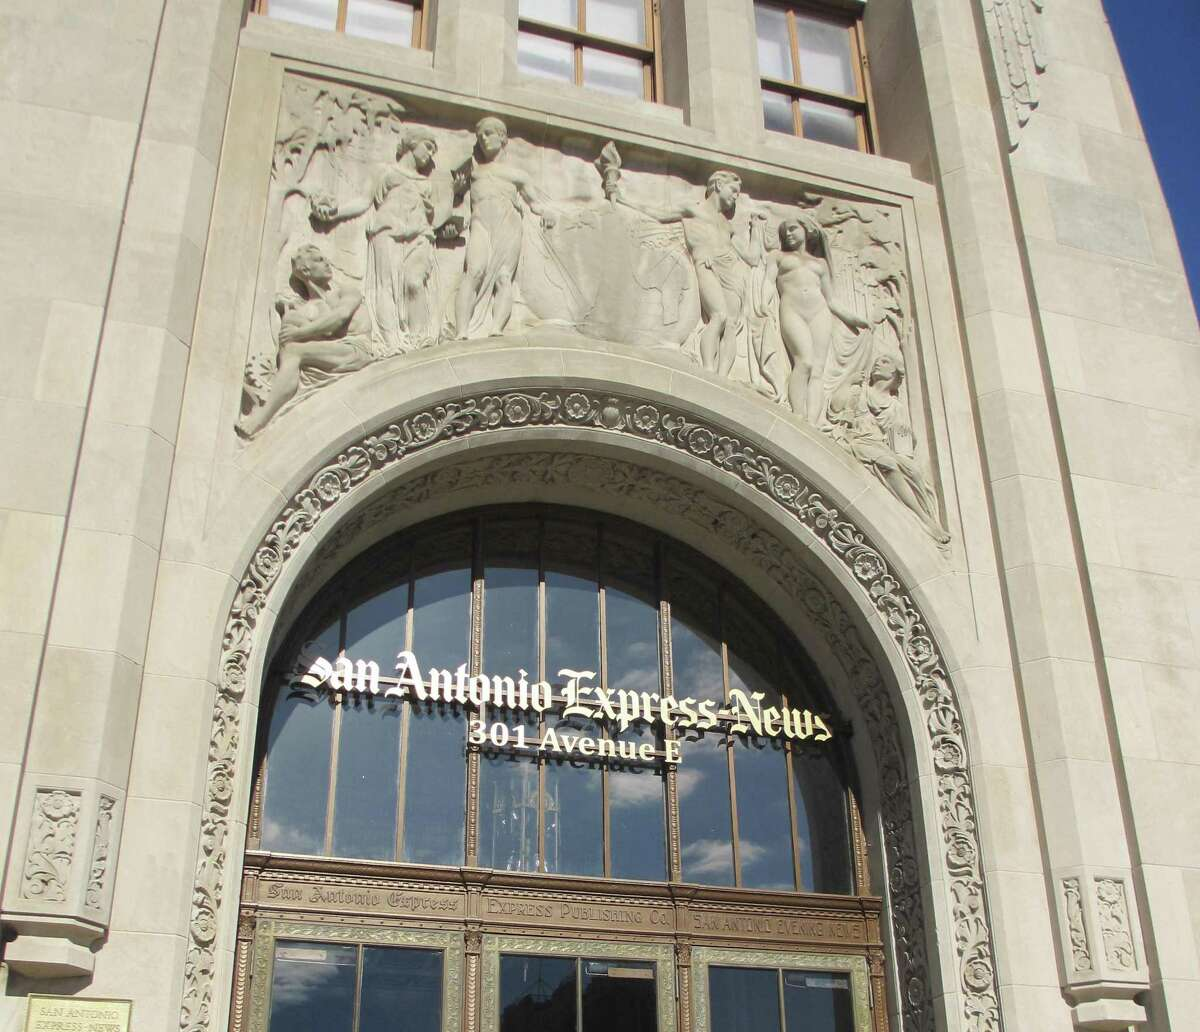 Pompeo Coppini's frieze above the main entrance of the San Antonio Express-News building allegorically sets forth the mission of a newspaper. The figure of Knowledge (third from the left) points to Texas on the globe.